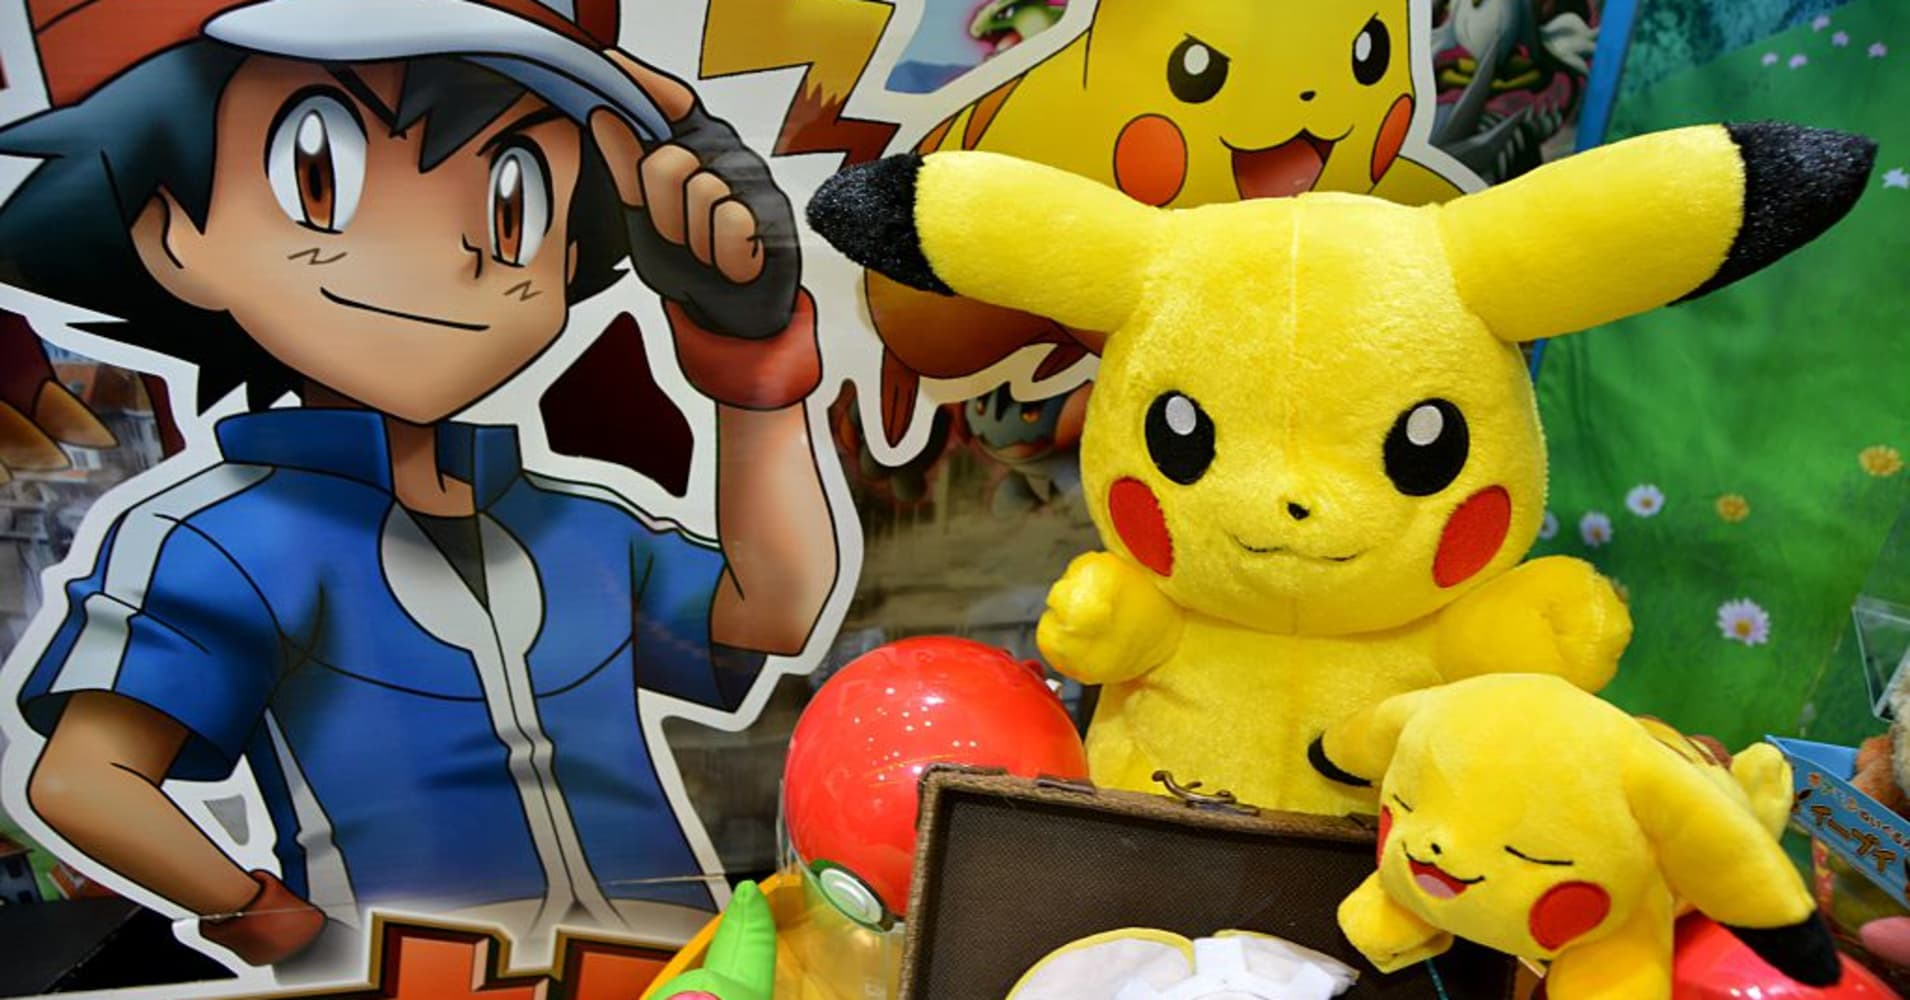 nintendo shares jump 25% as pokemon go dominates us app store